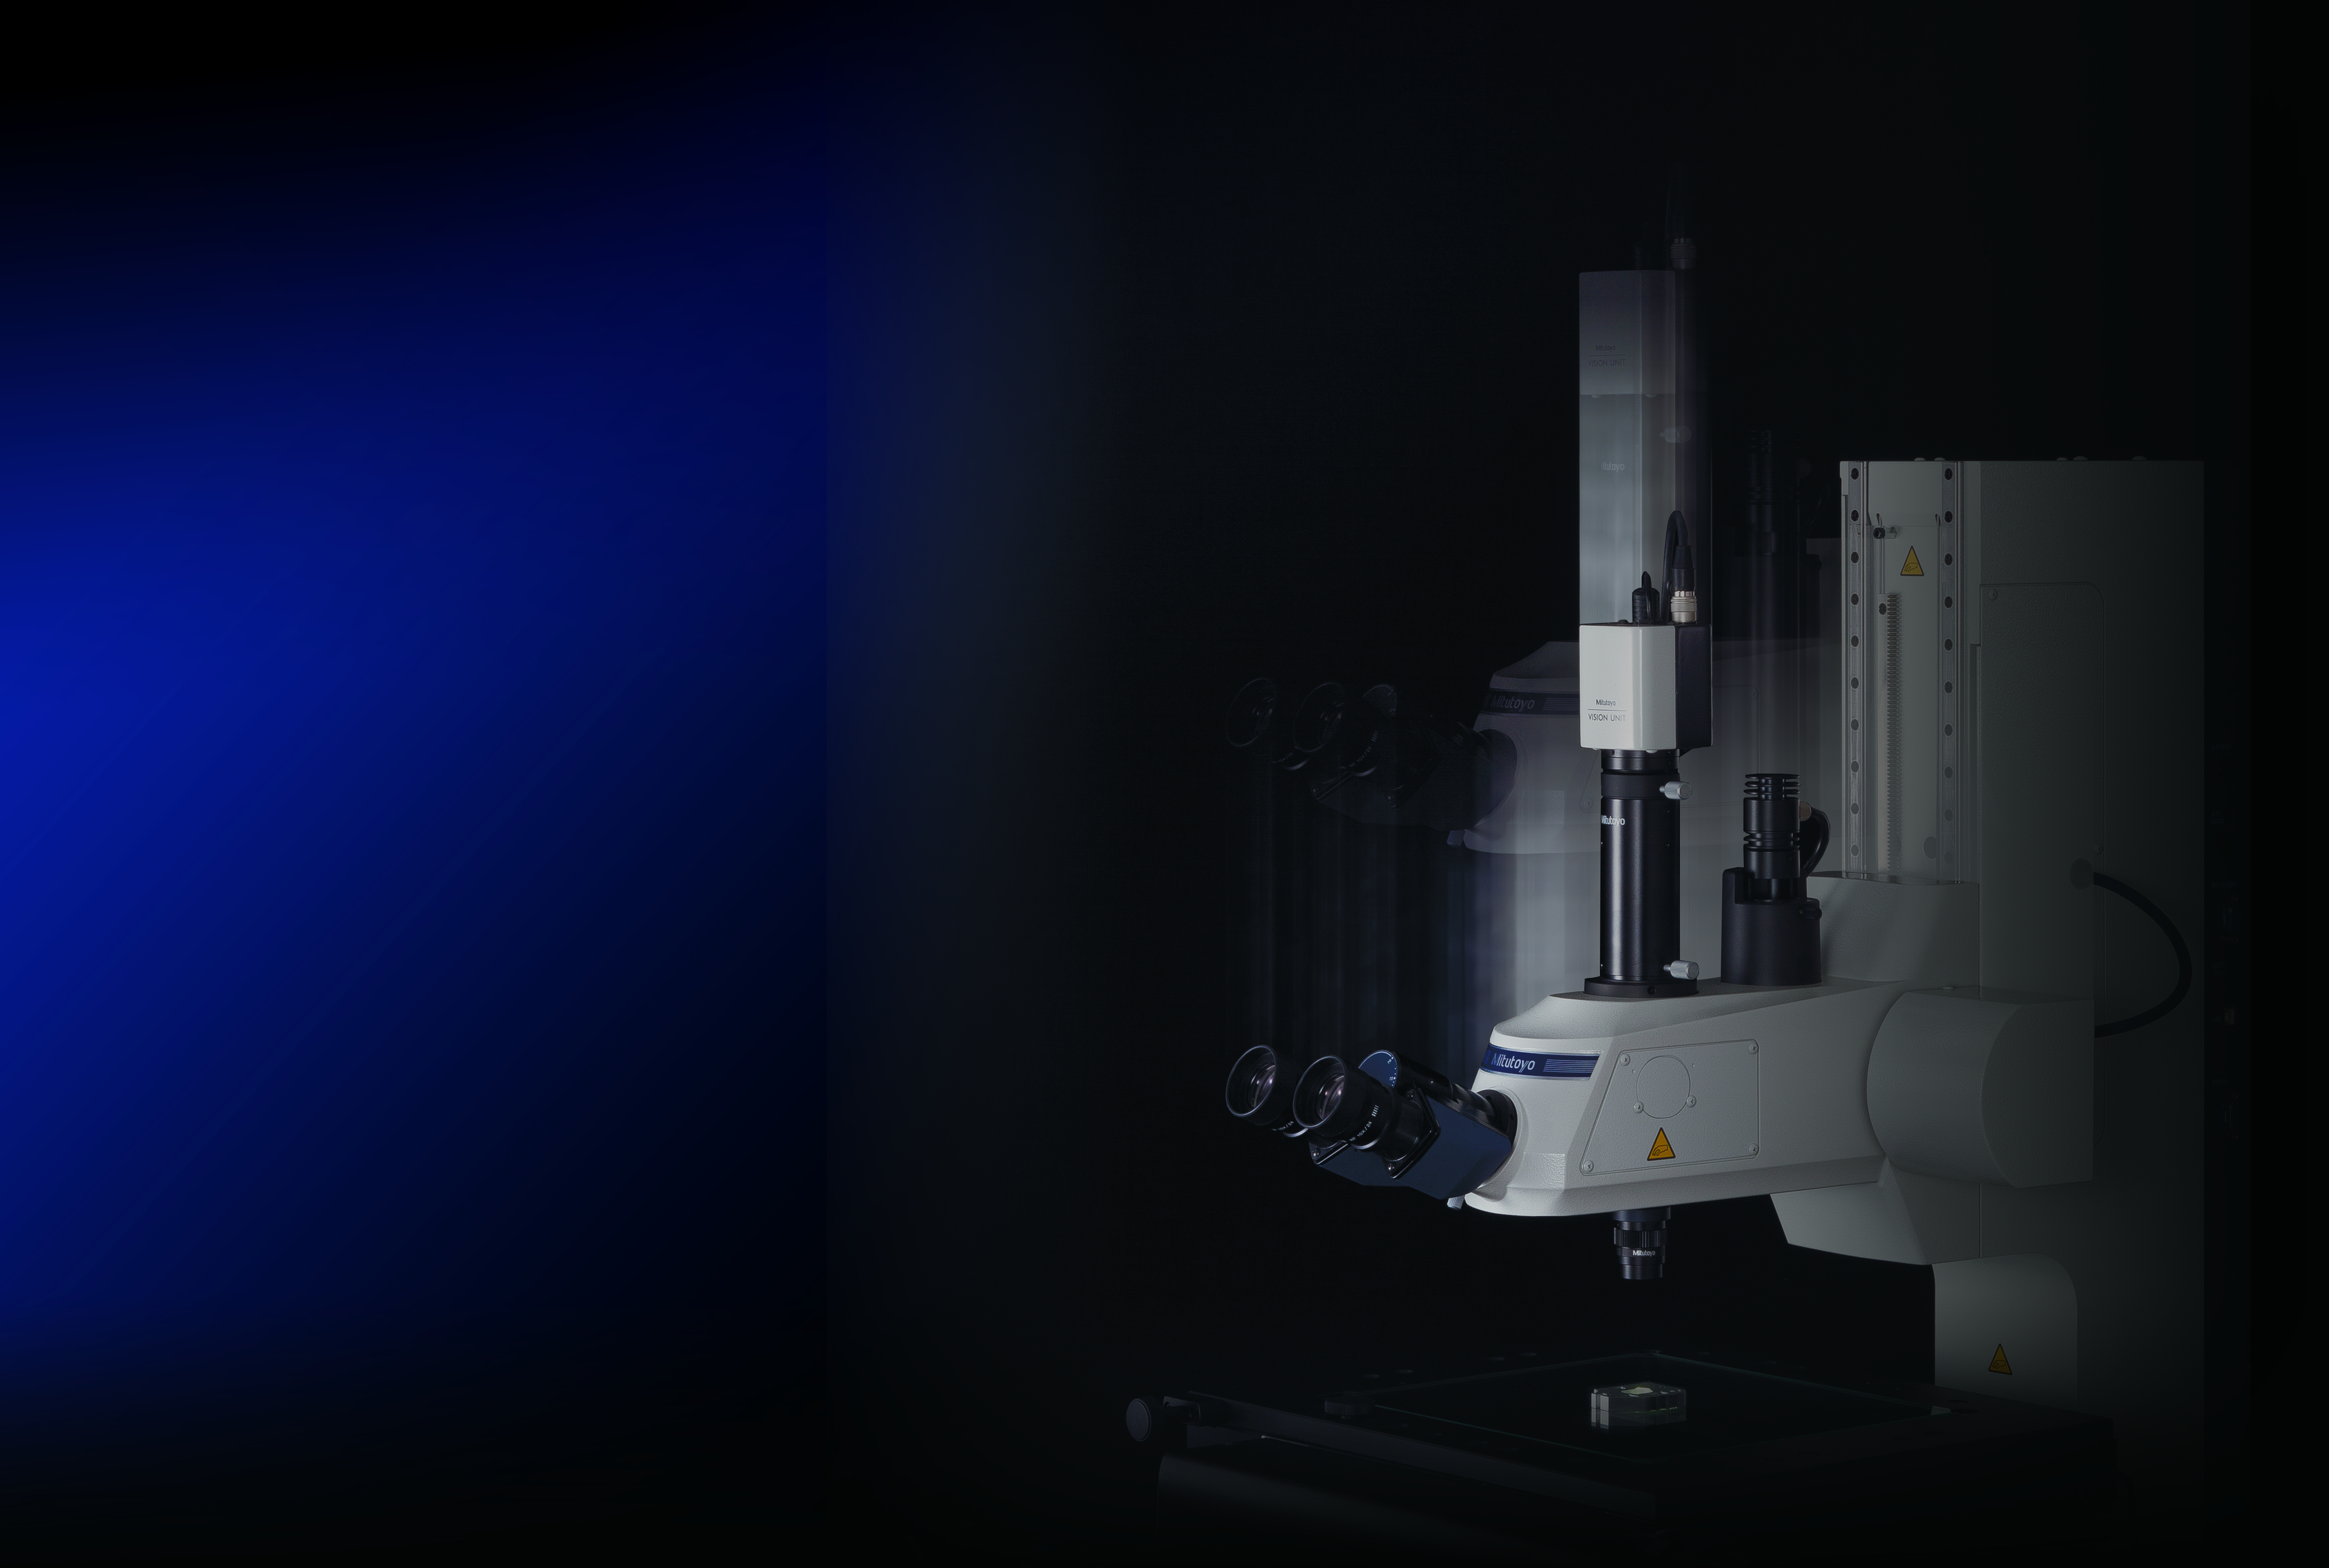 THE NEW FACE OF PRECISION TECHNOLOGY